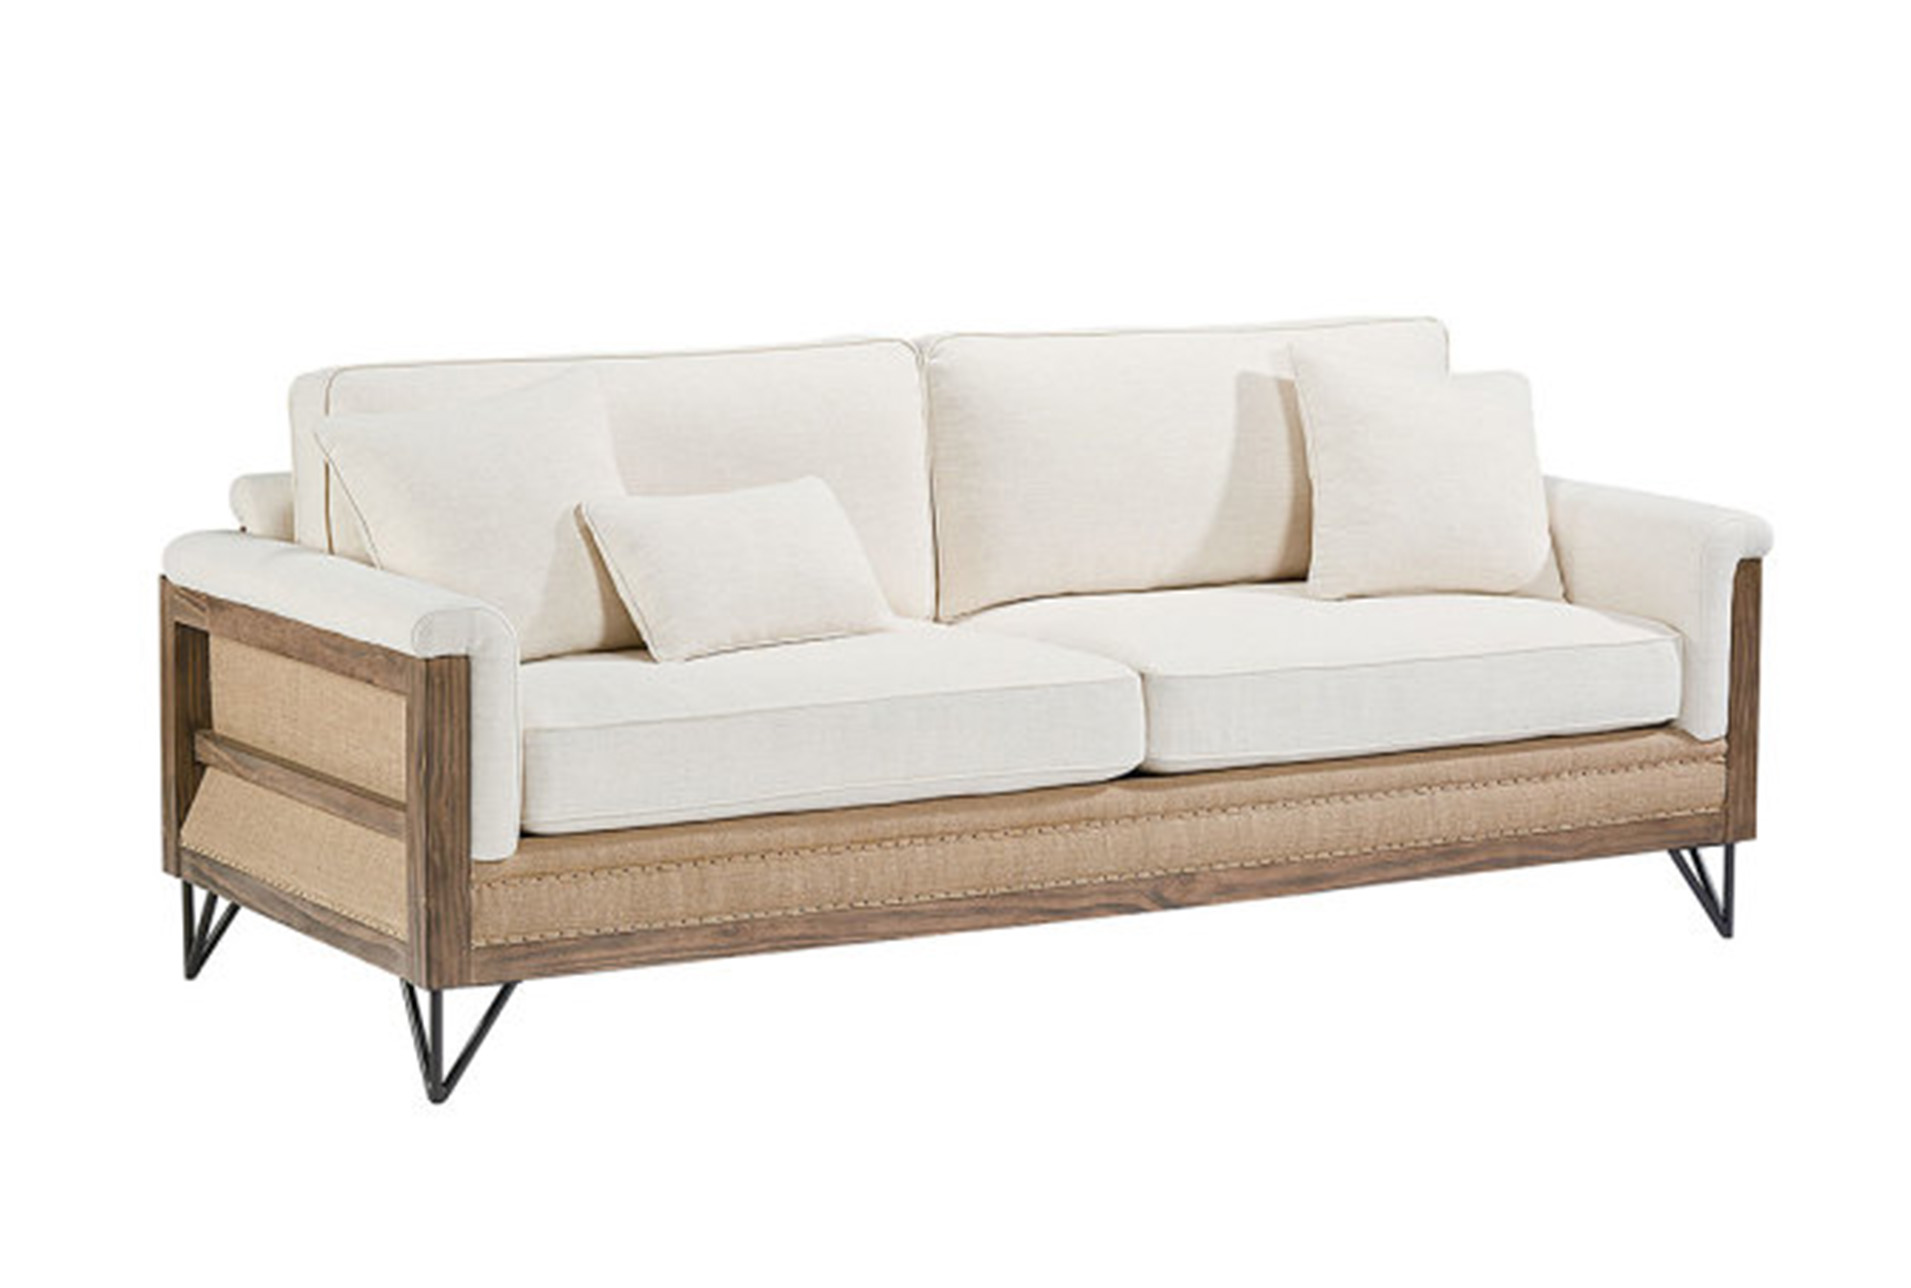 Magnolia Home Paradigm Sofa By Joanna Gaines (Qty: 1) Has Been Successfully  Added To Your Cart.